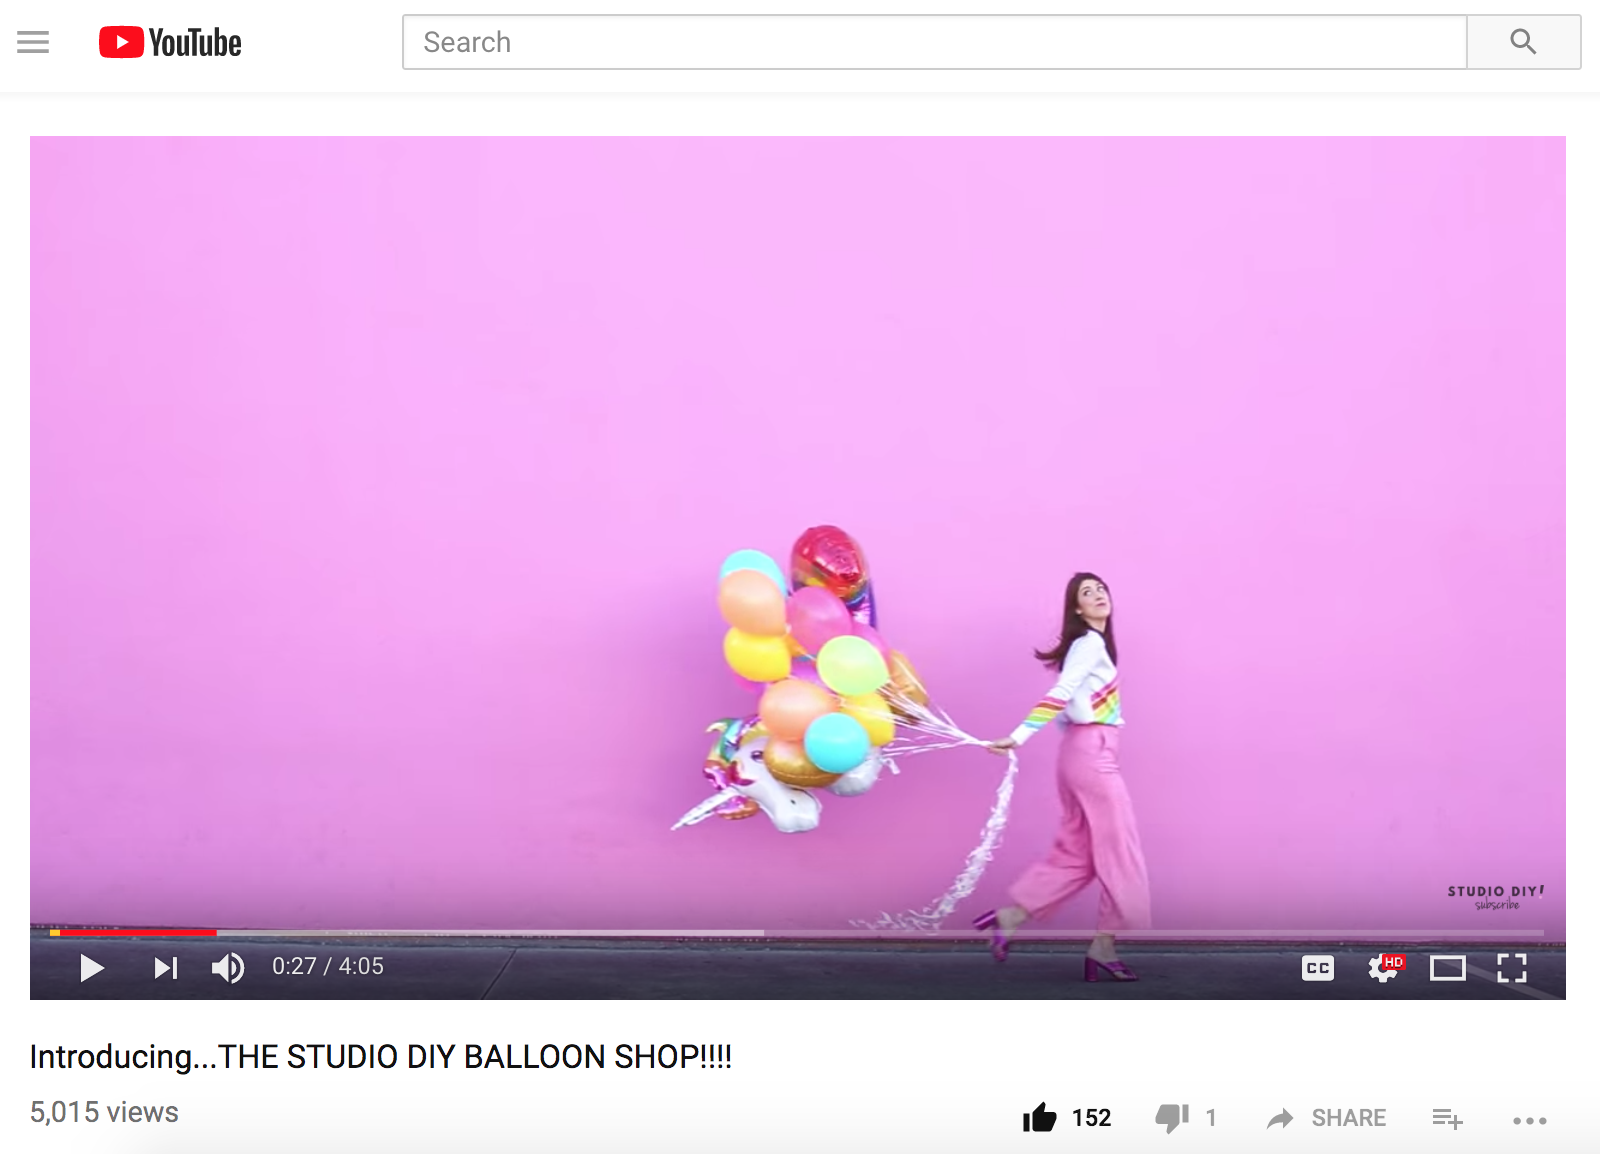 Kelly's balloon launch was a personal story that needed a script. I wrote one for the launch video, which  you can watch here.